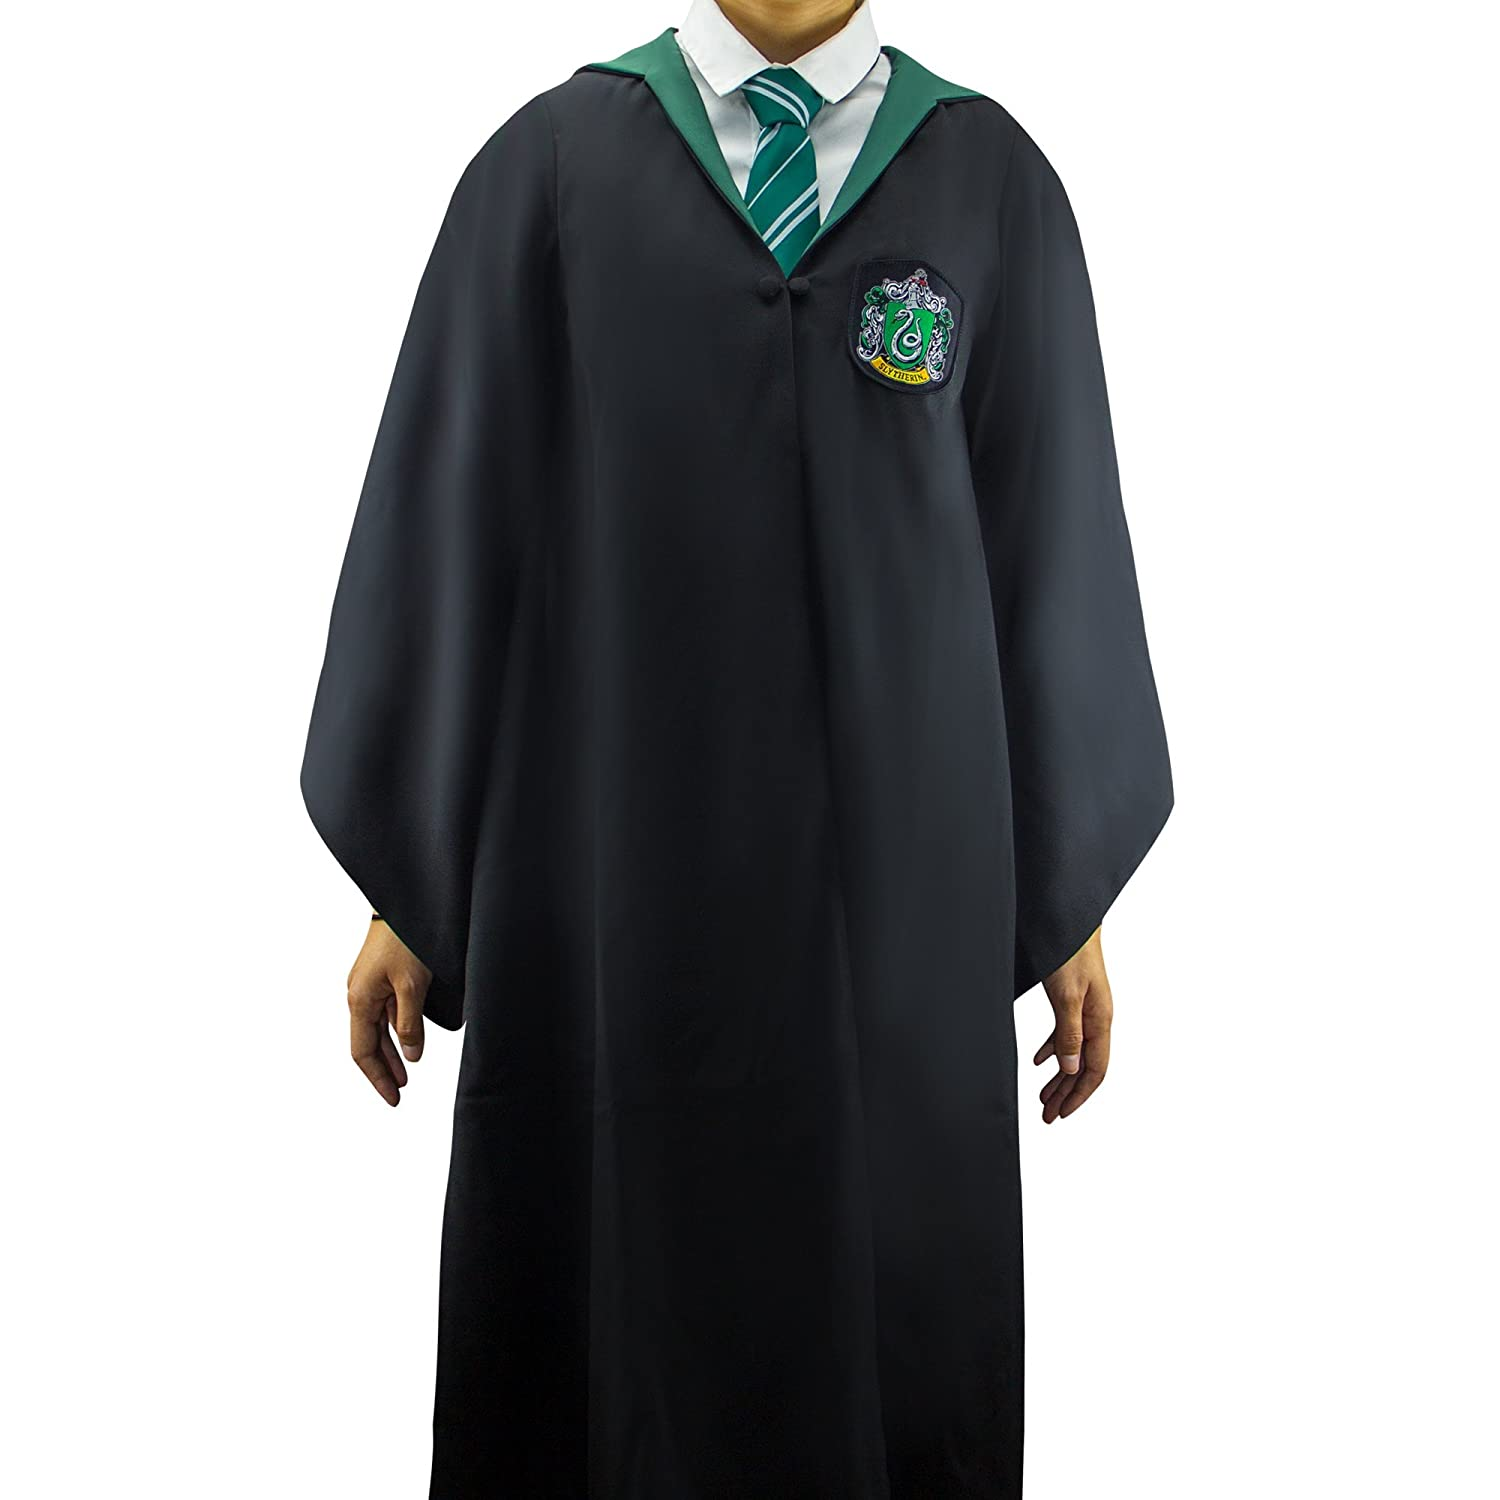 Amazon.com  Harry Potter Robe - Authentic Official Tailored Wizard Robes  Cloak - Adults and Kids Size - Cinereplicas  Clothing b2d3c2a78